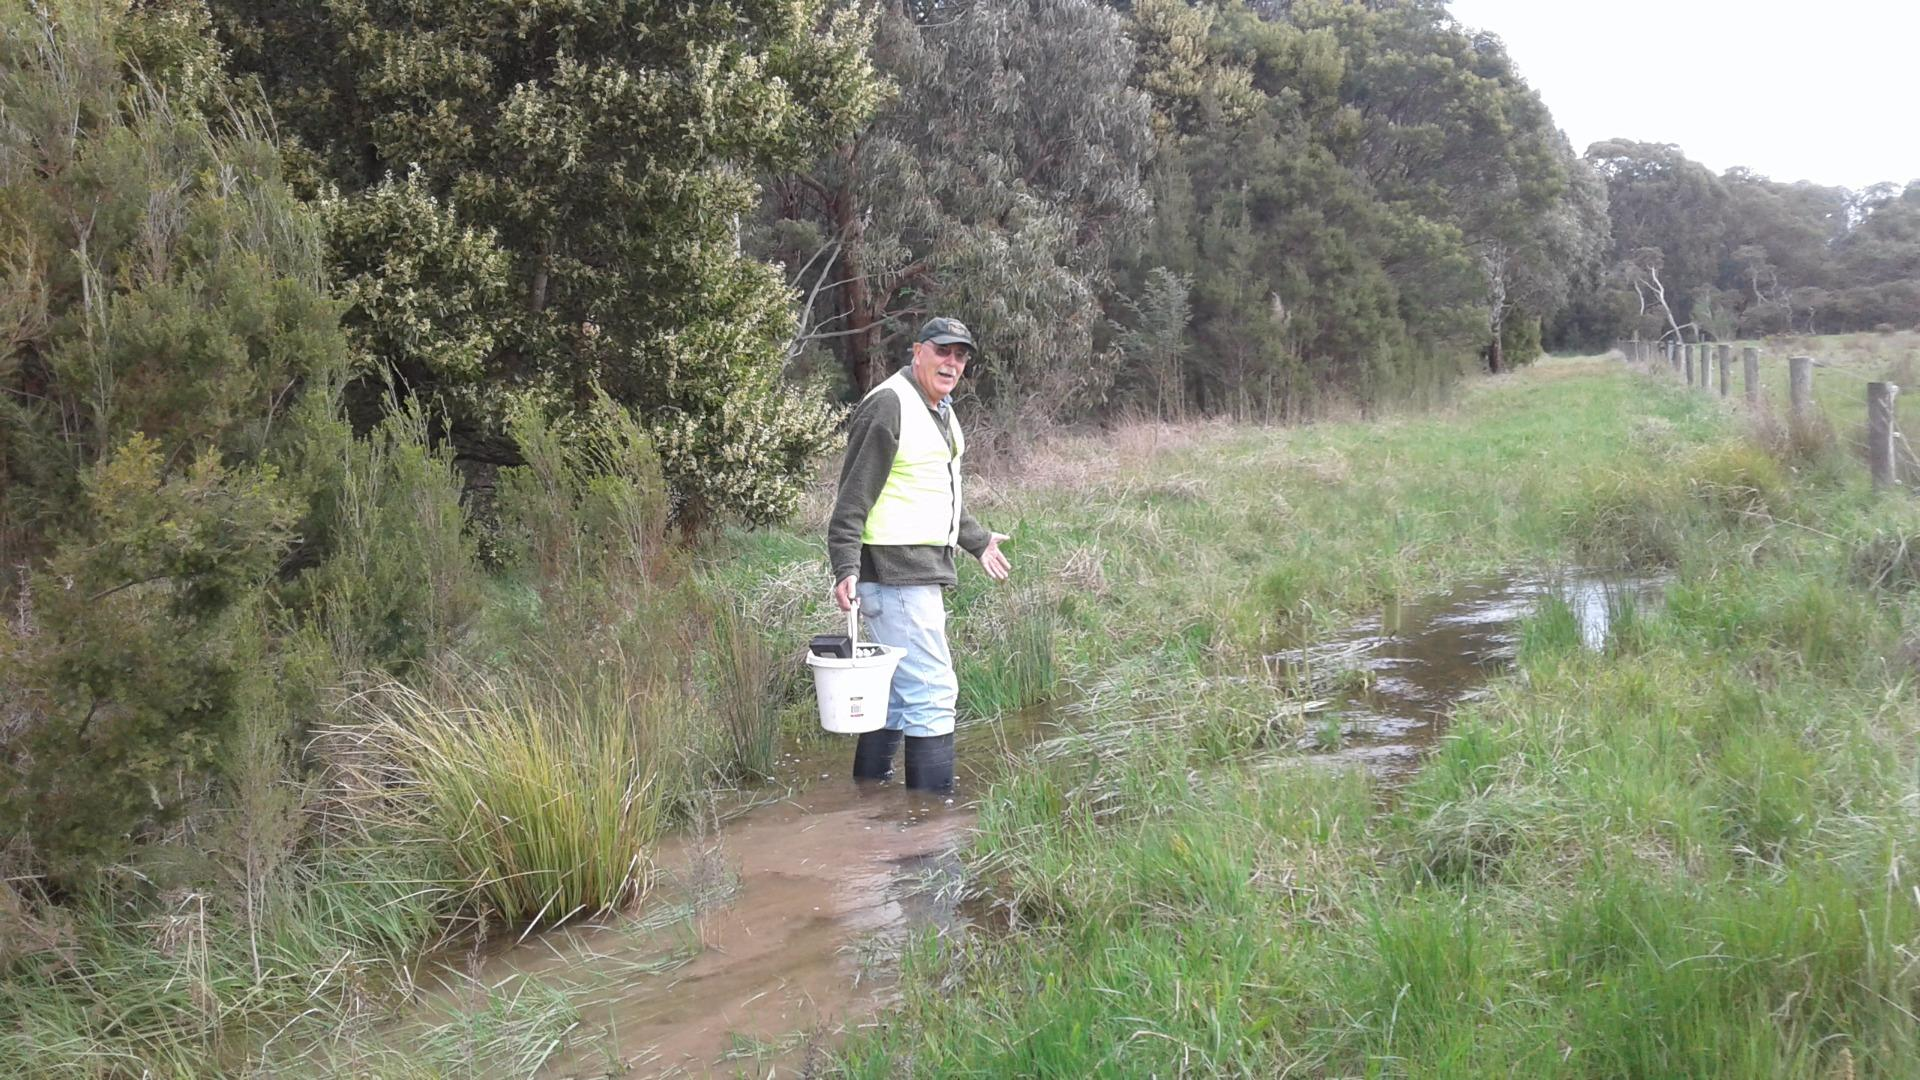 Chris walking through the water flowing over the track. Chris is 6ft 4 so you can see how deep the water is